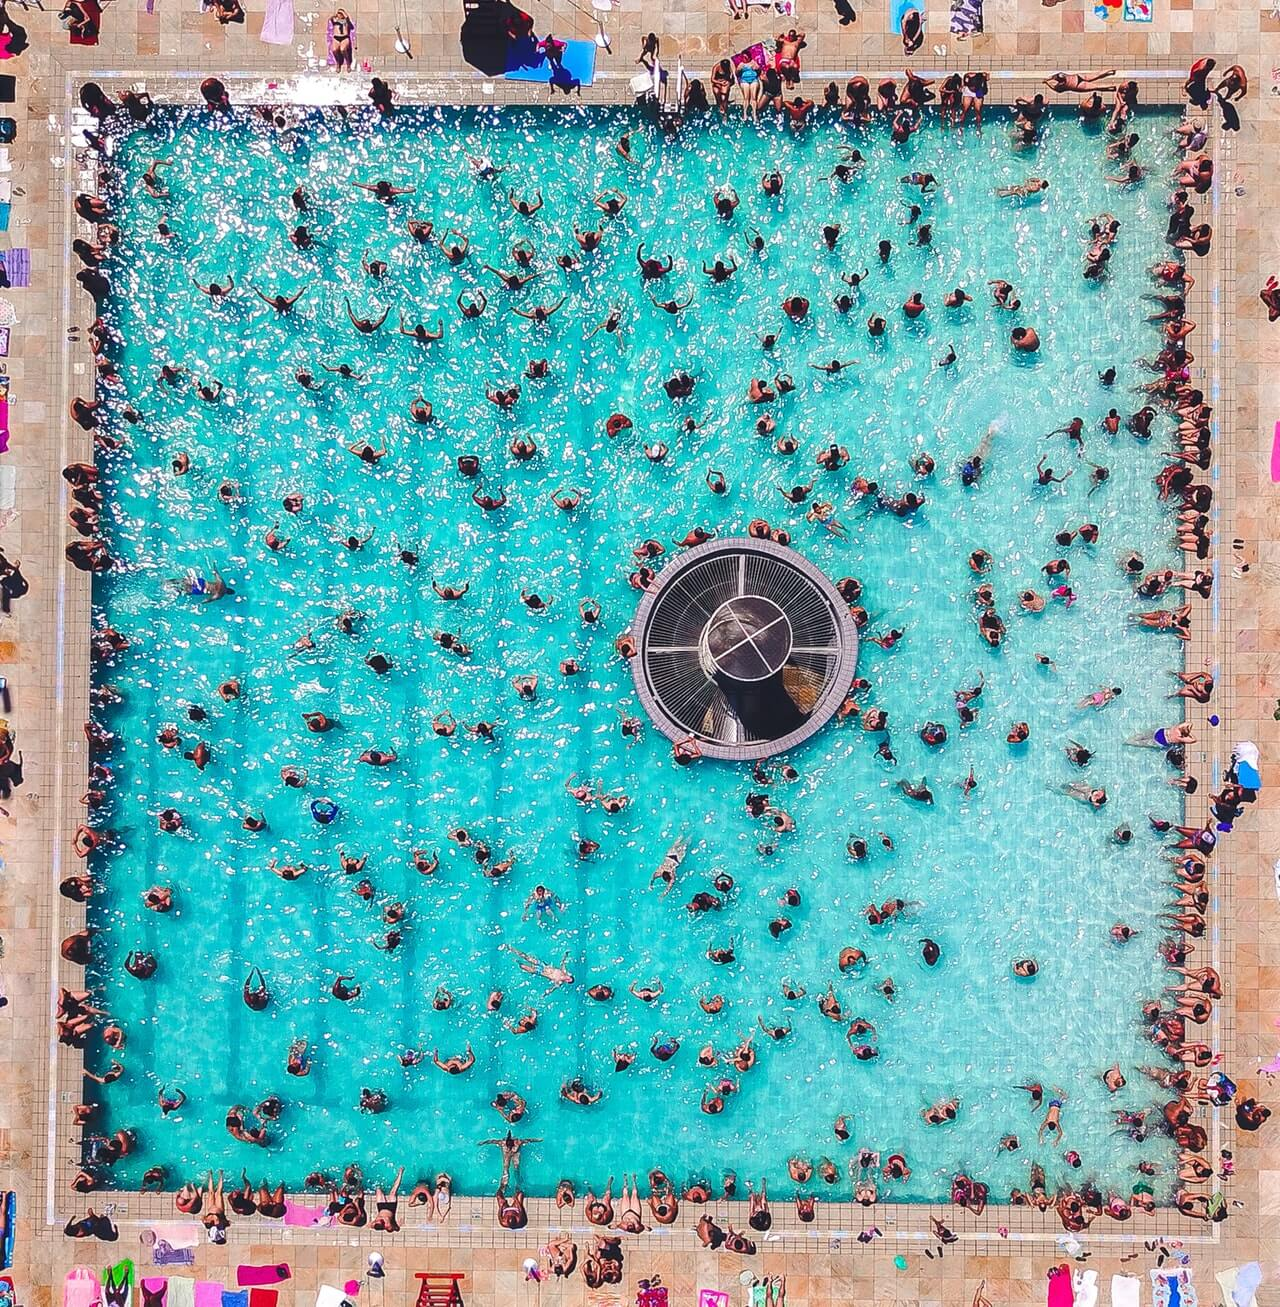 Crowded Pool: Photo by Sergio Souza from Pexels